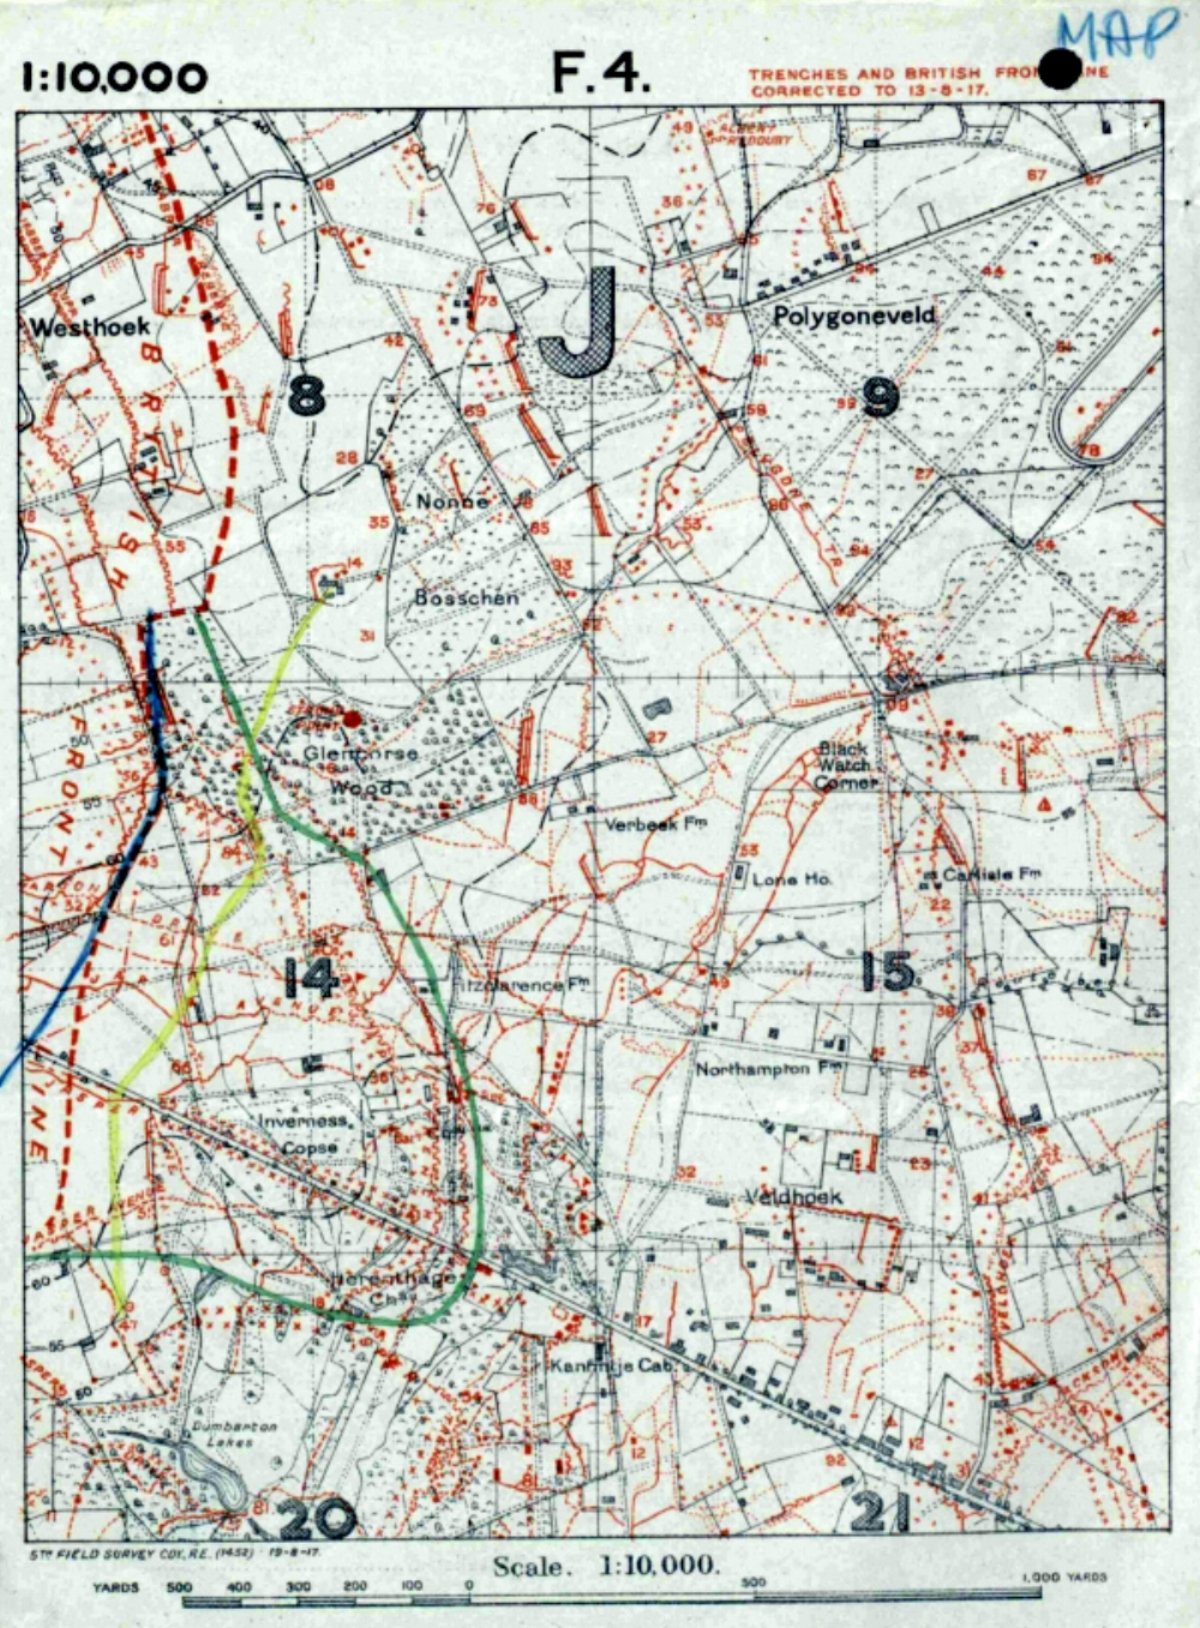 King's Royal Rifle Corps field map showing the locations of Nonne Boschen, Glencorse Wood, Herenthage Chateau, and Inverness Copse lying either side of the Menin Road.